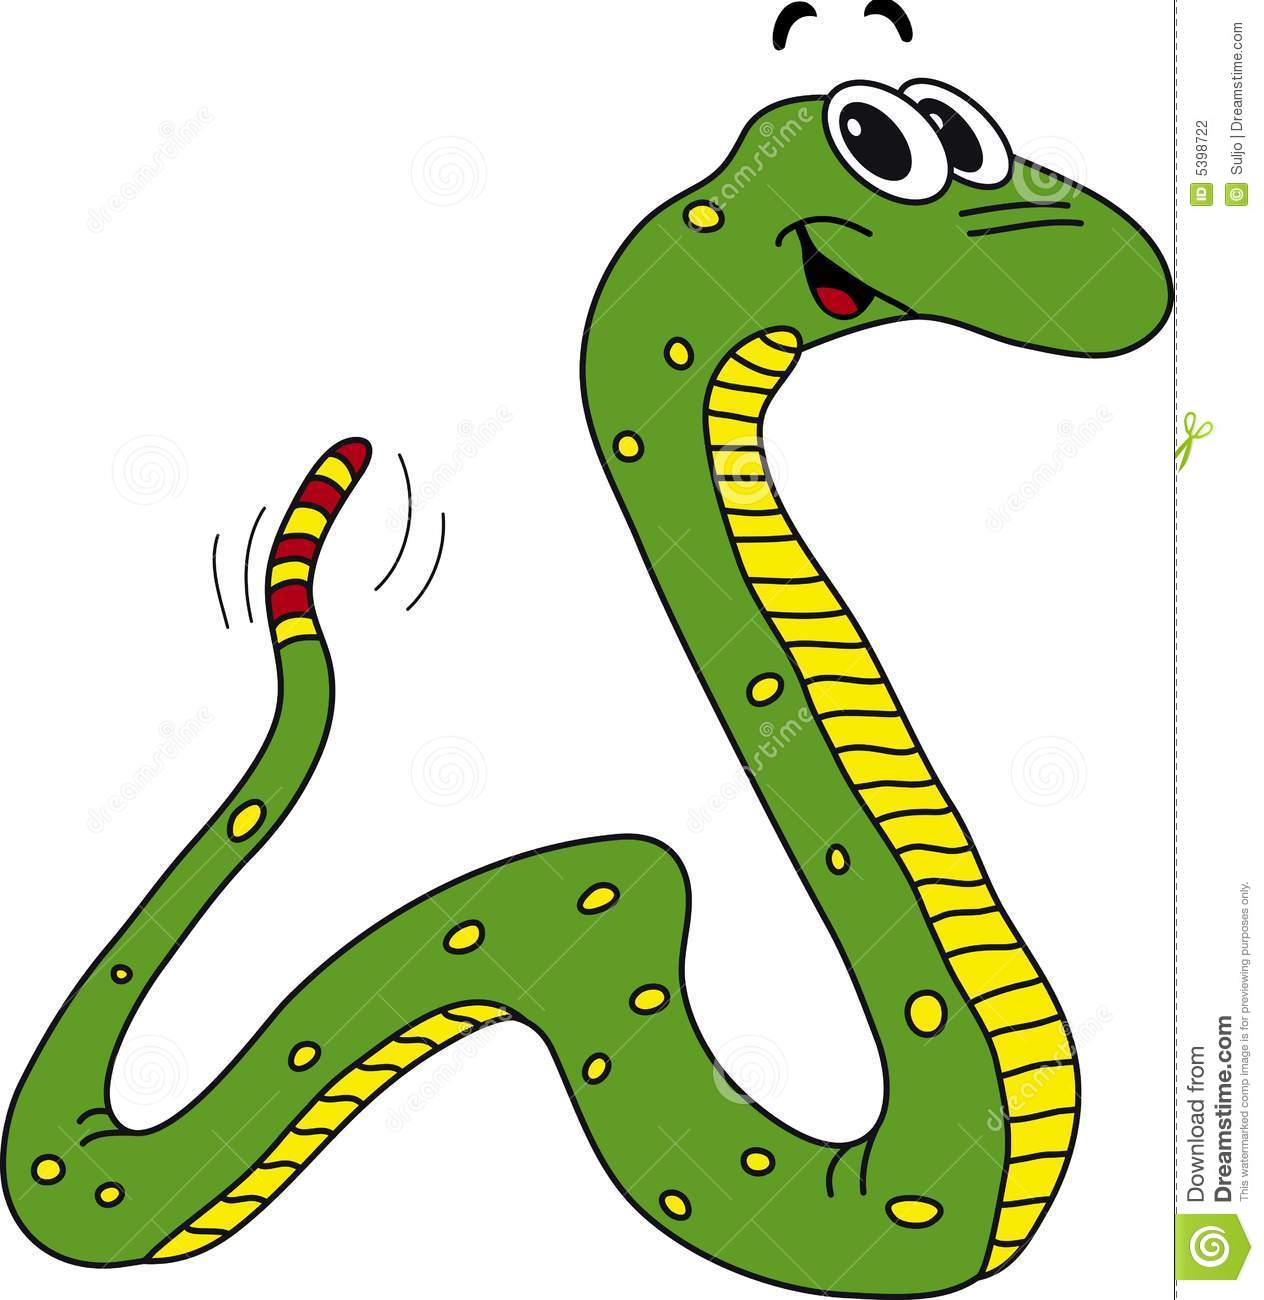 Traditional clipart 3eyed snake royalty free stock Clipart of snake - ClipartFest royalty free stock